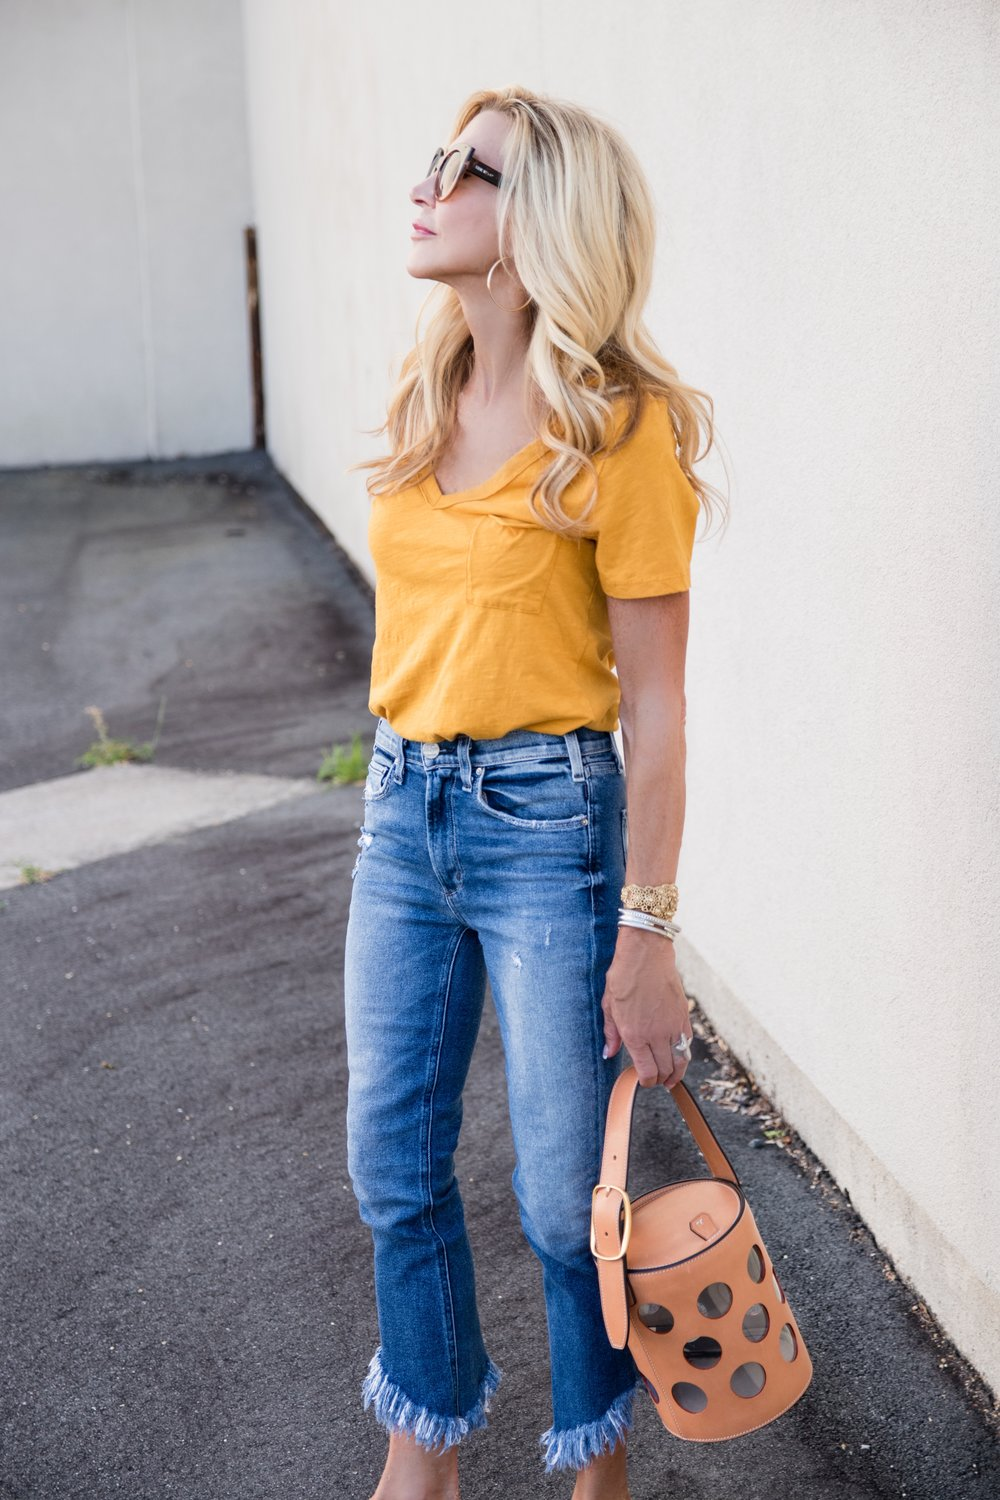 McQuire jeans, Tory Burch Bag, Anthropologie tee